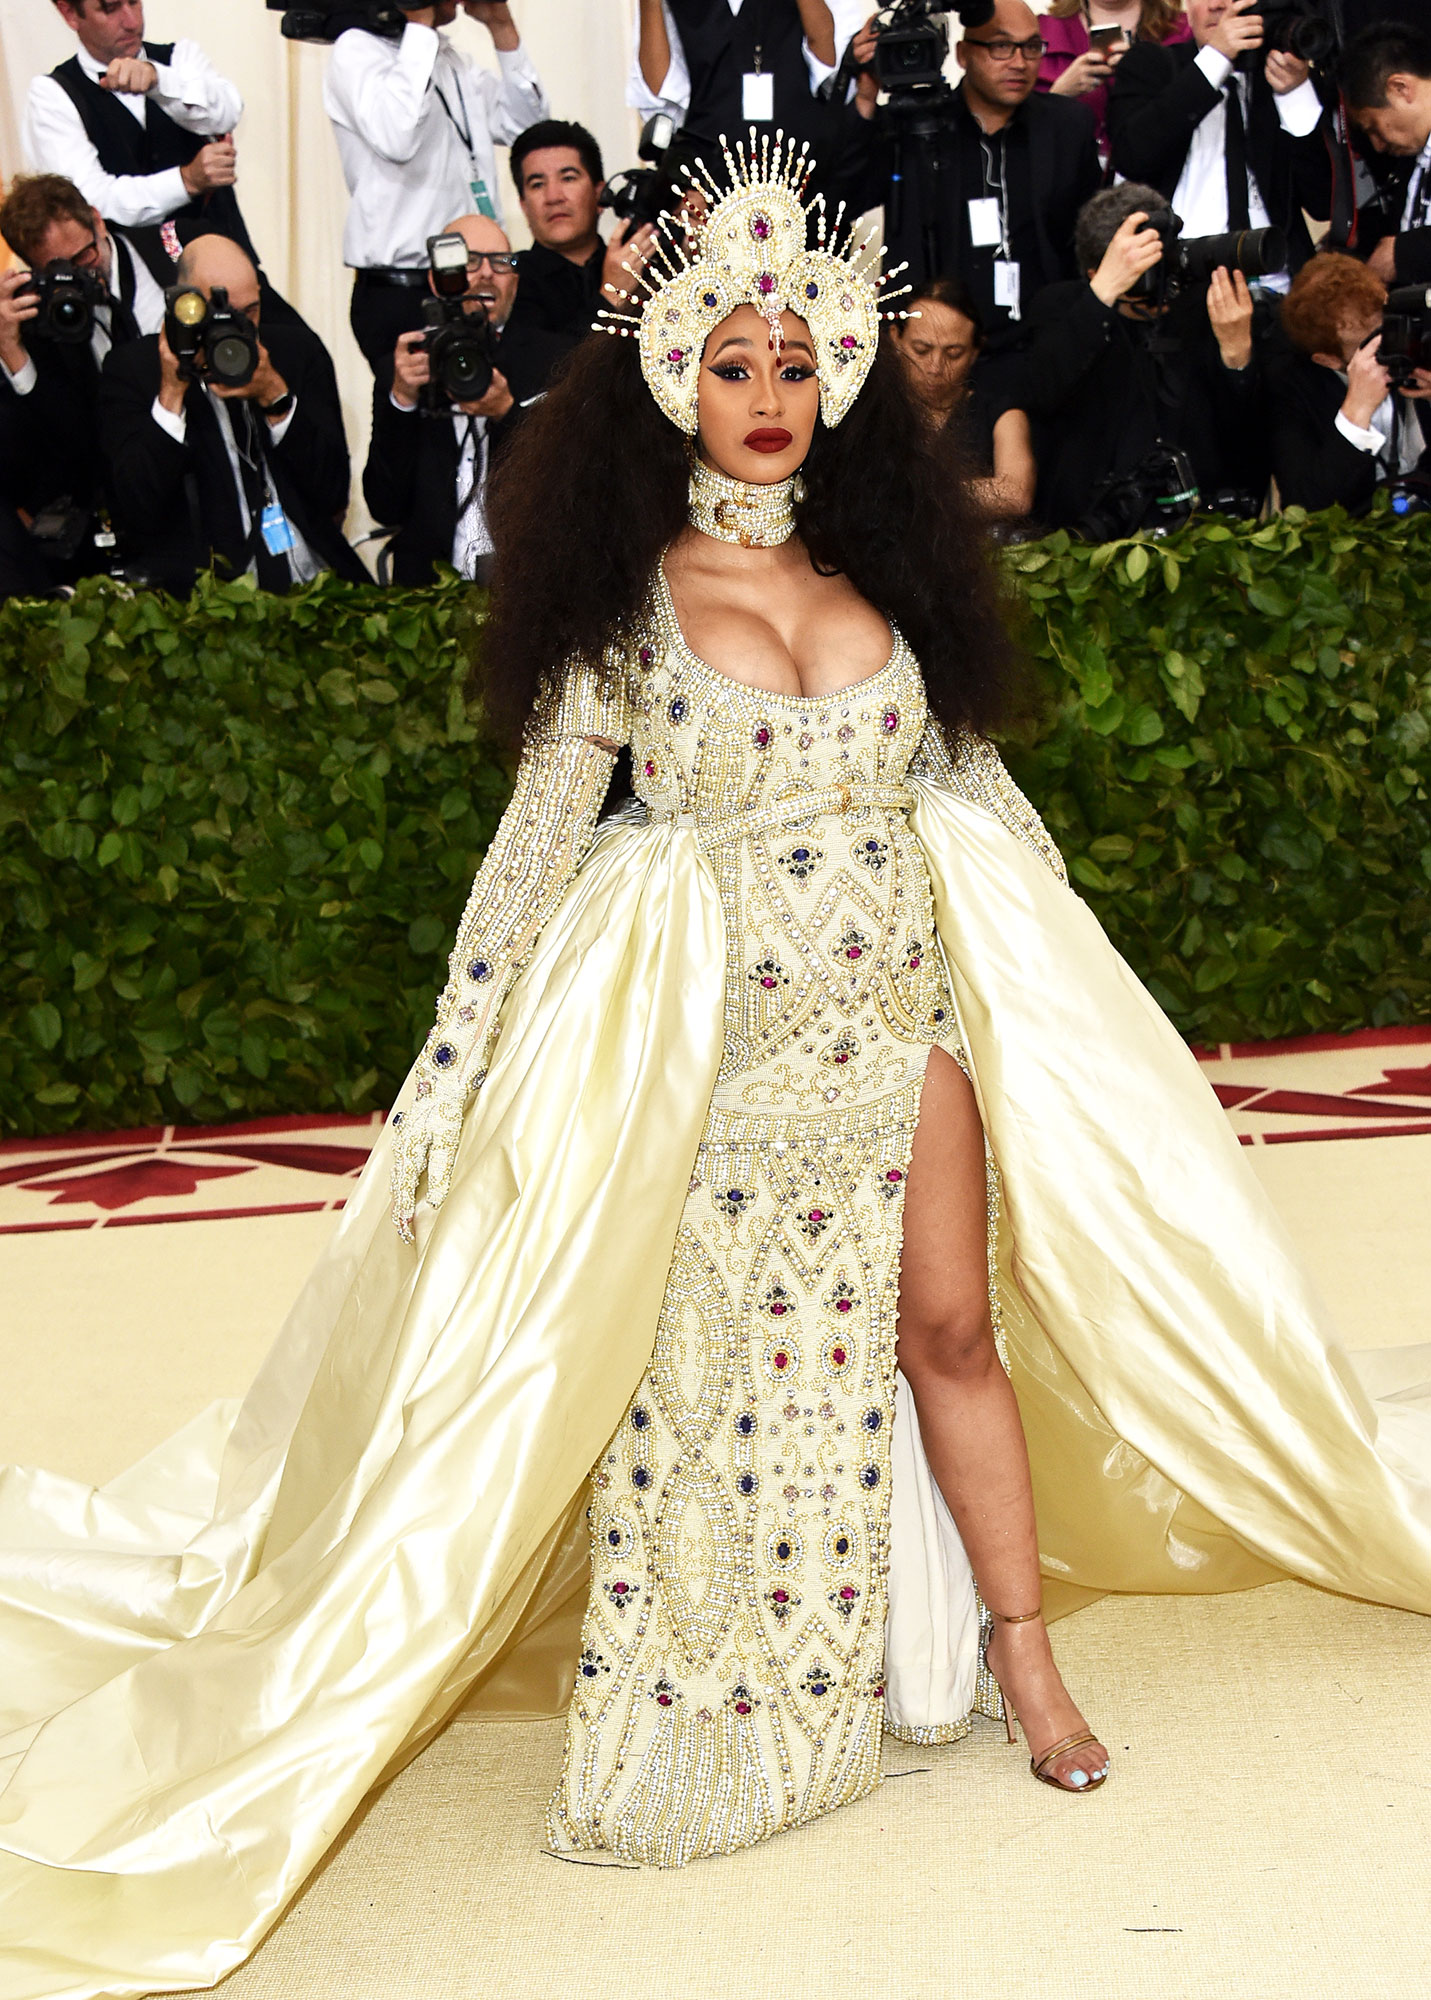 Cardi B The Wild Met Gala Red Carpet Fashion Looks We Can't Stop Thinking About - In Moschino.